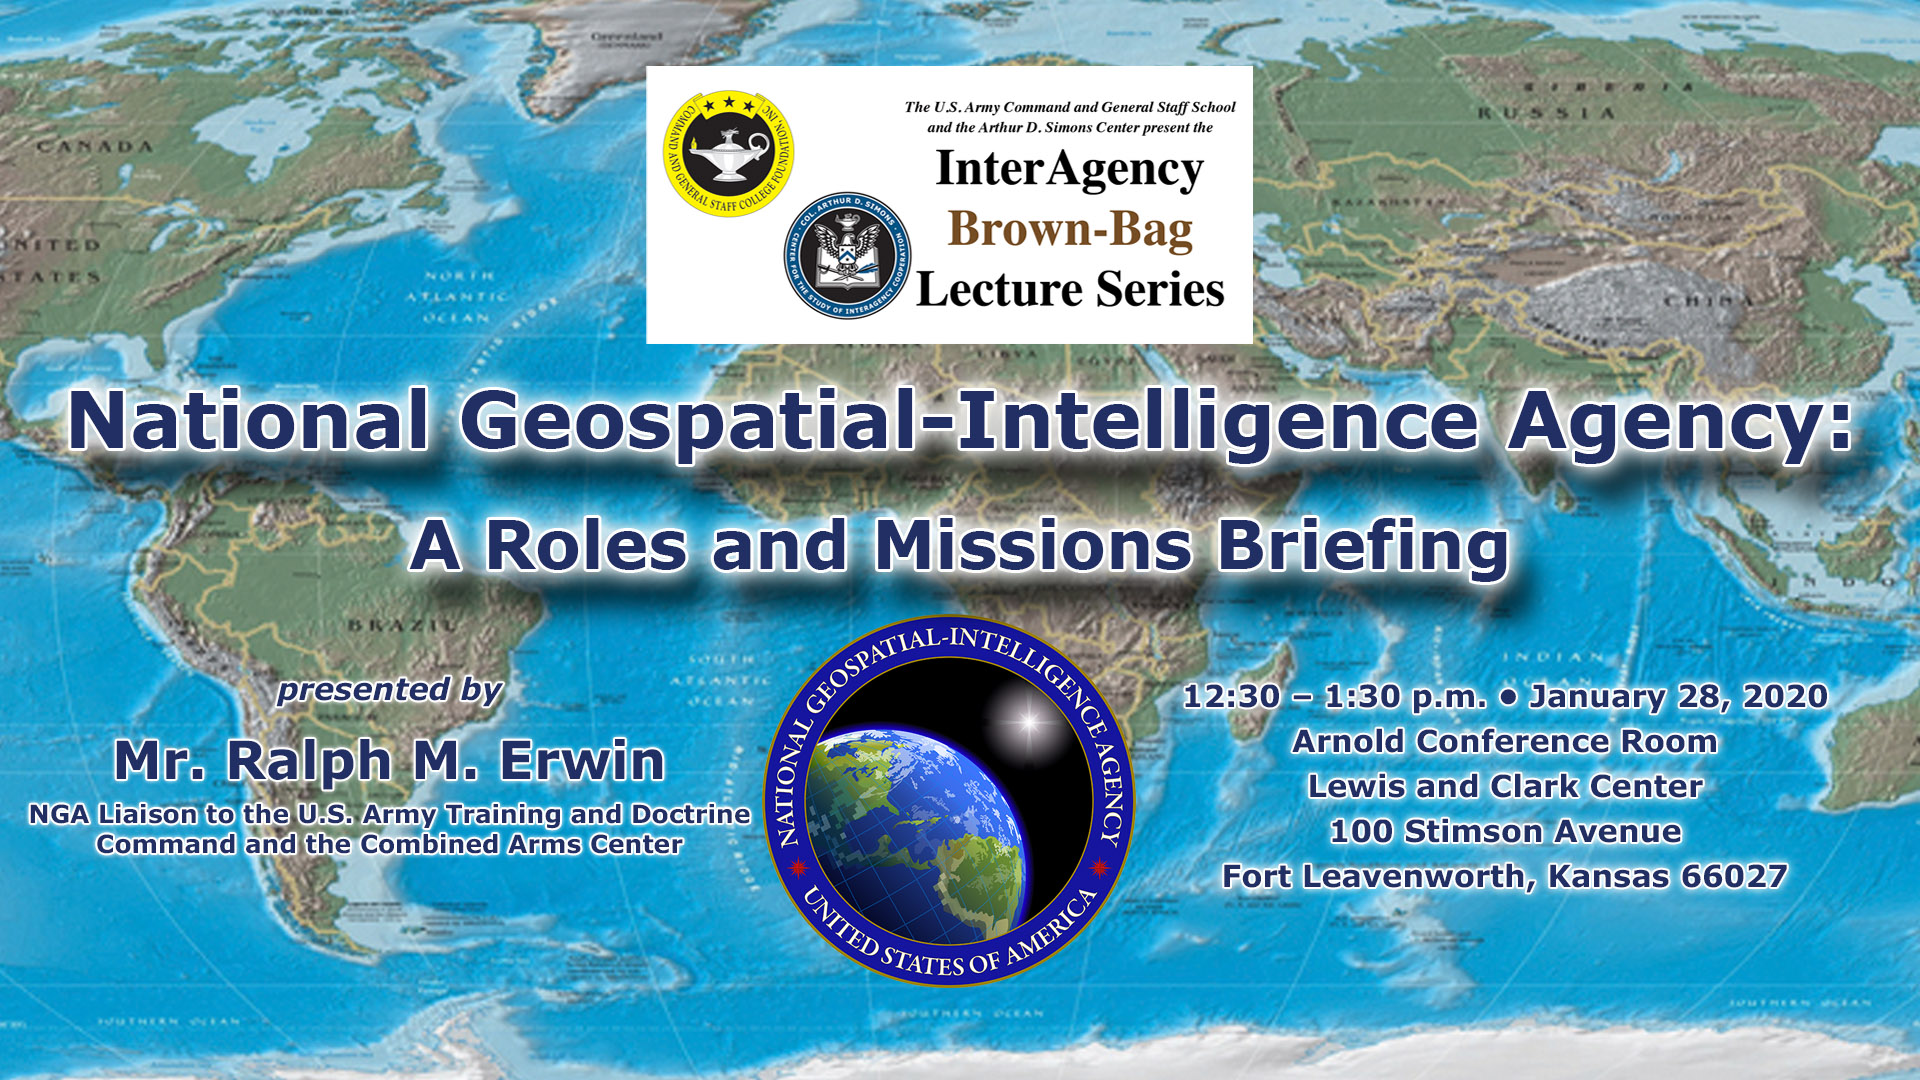 composite image with global map background with NGA seal and the date/time of the next interagency brown-bag lunch on Jan. 28, 2020